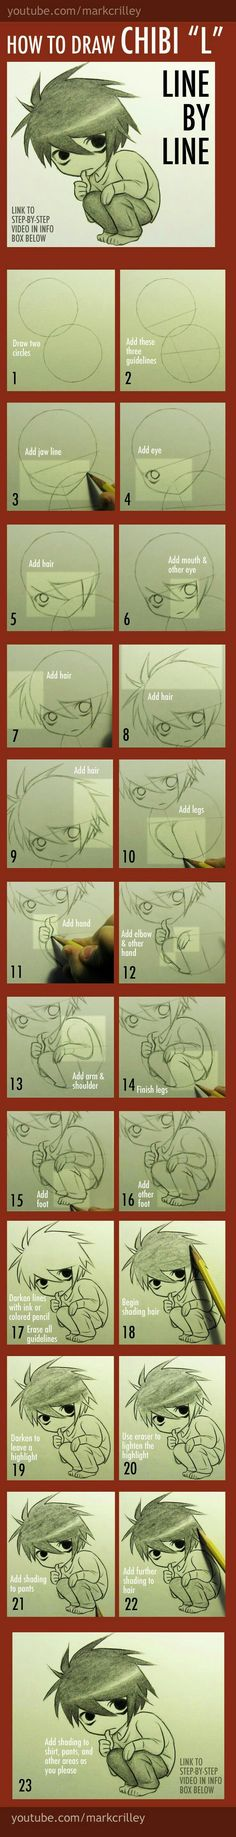 How to draw L chibi